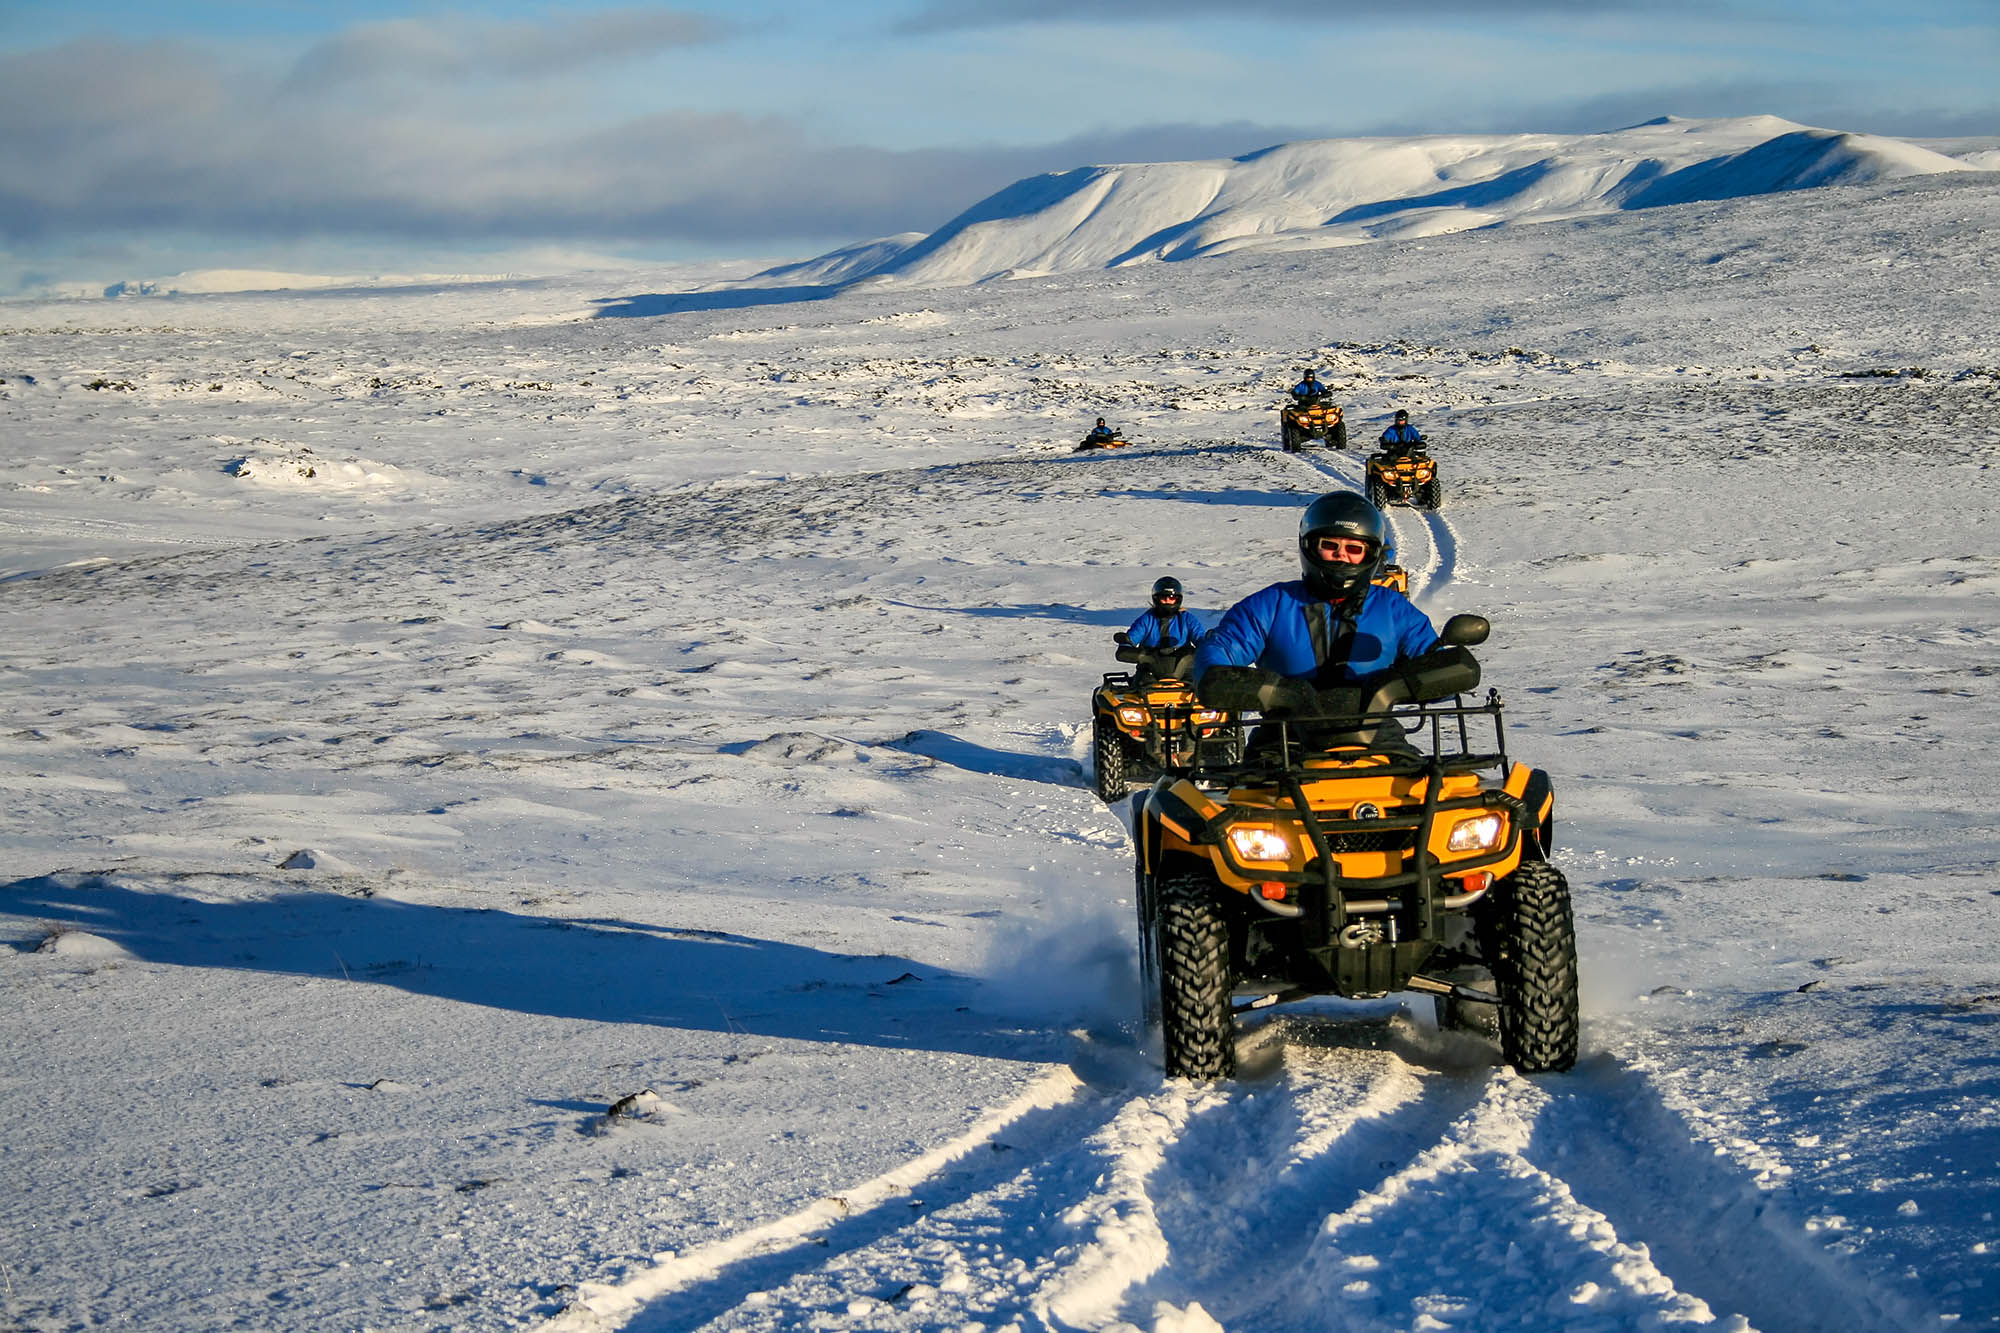 ATV Tour in the snow - Photo by Kevin Boutwell